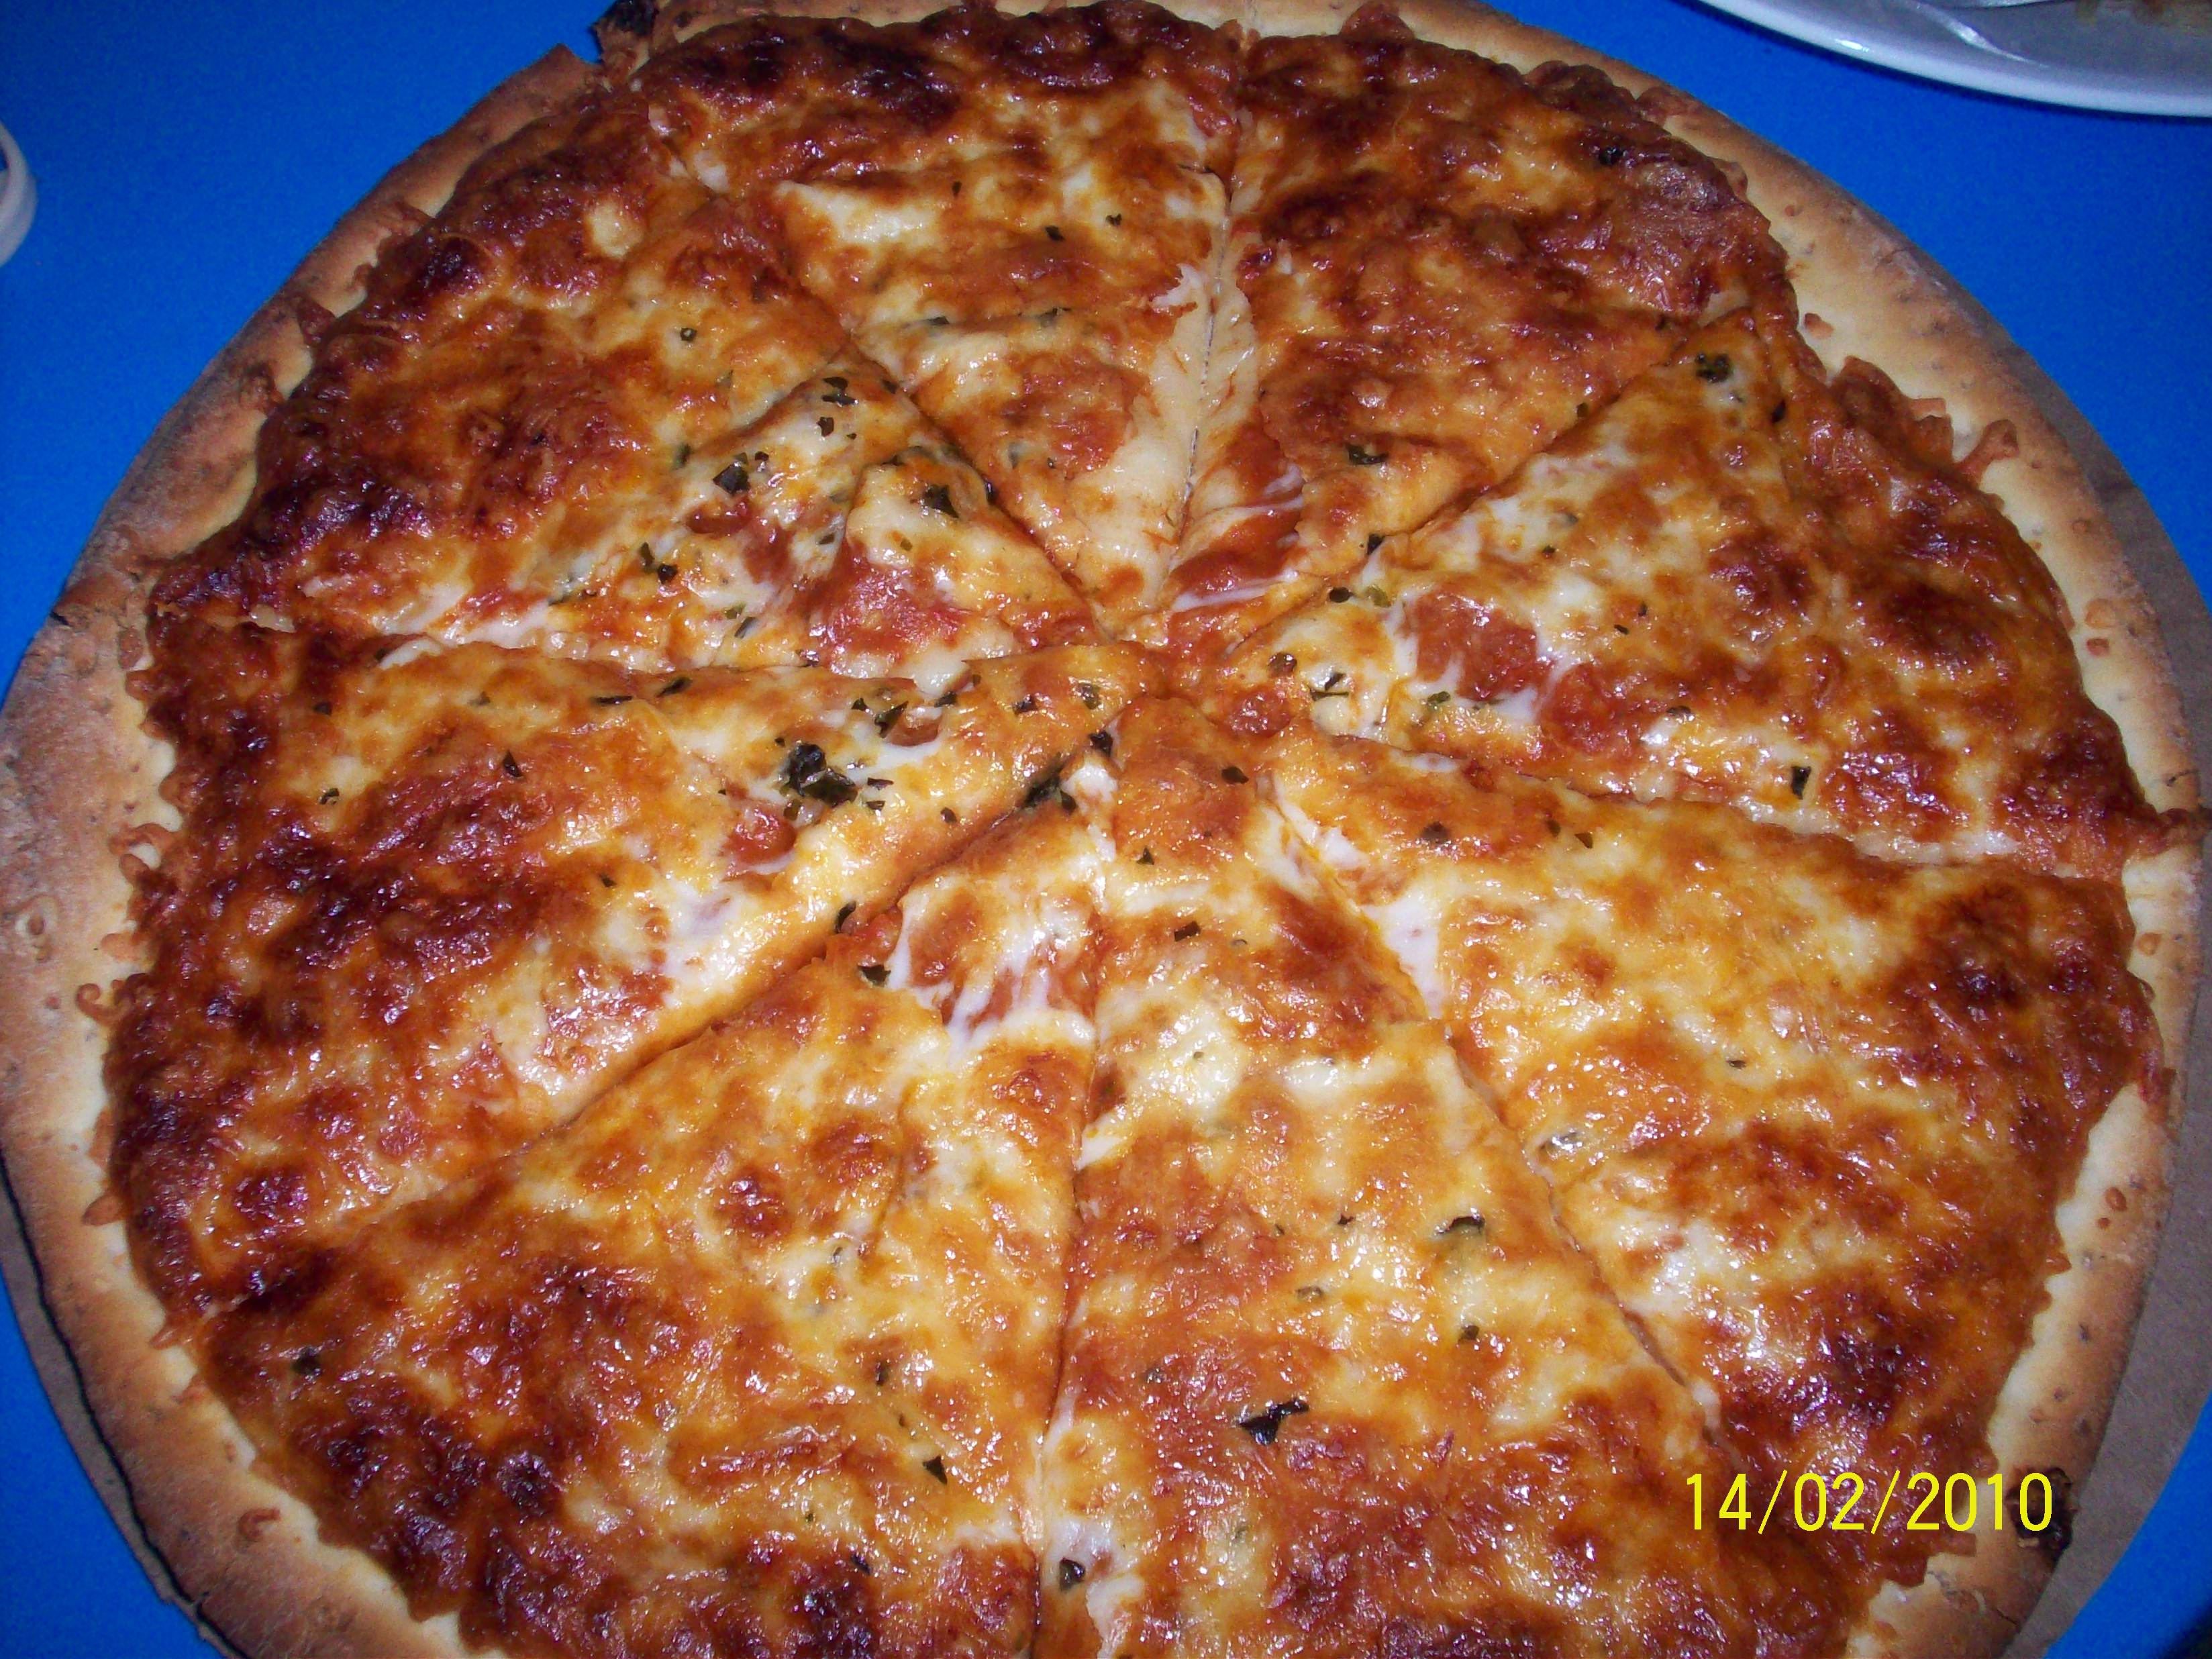 http://foodloader.net/cutie_2010-02-18_Four_Cheese_Pizza.jpg